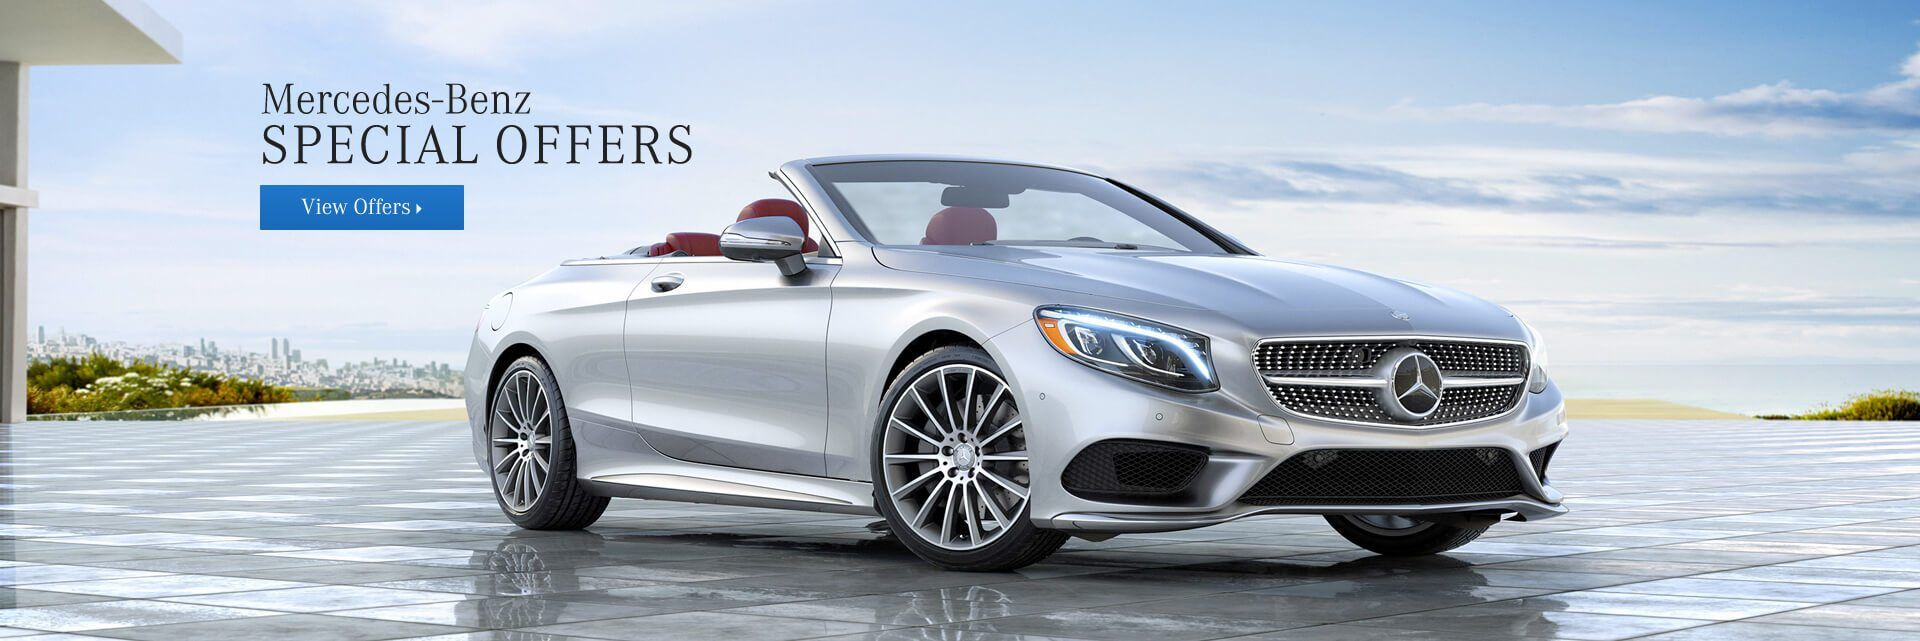 New Mercedes-Benz Special Offers